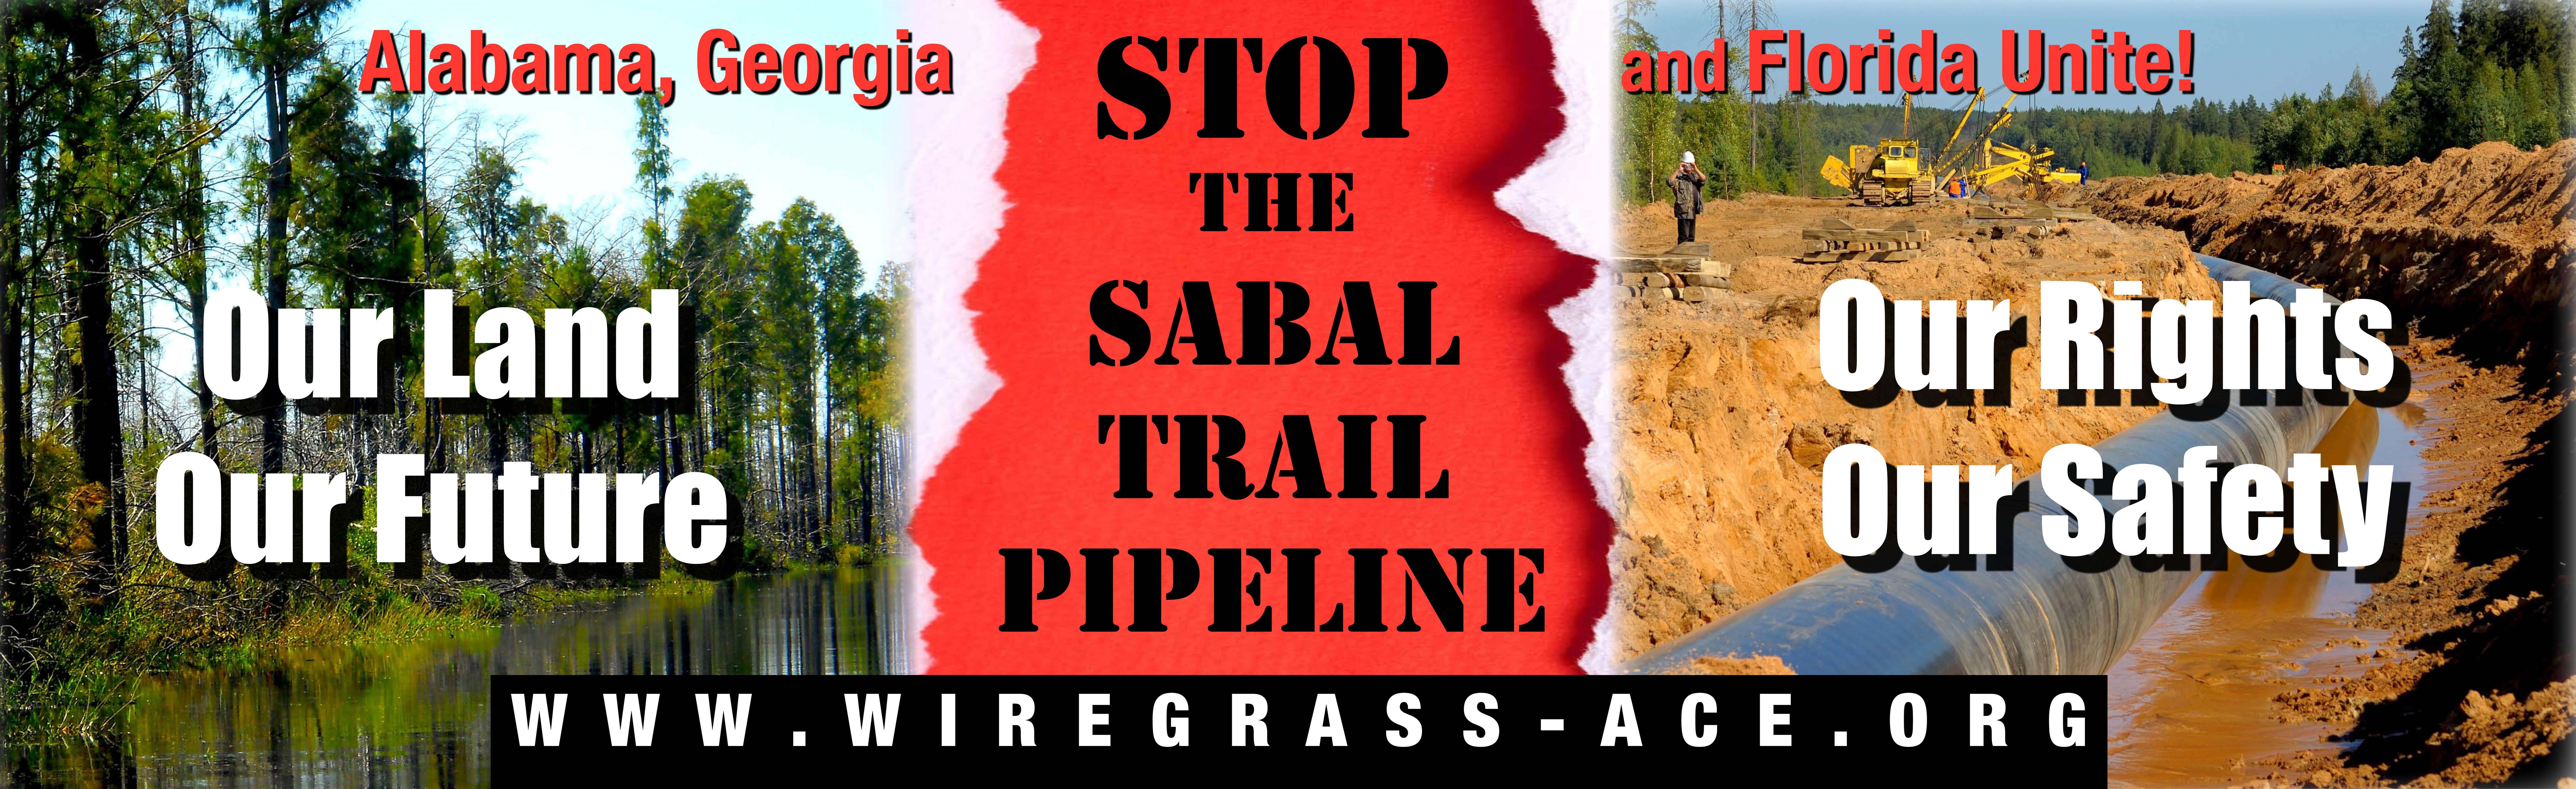 11025x3375 Stop the Sabal Trail Pipeline, in Billboard, by Michael G. Noll, for SpectraBusters.org, 5 May 2014